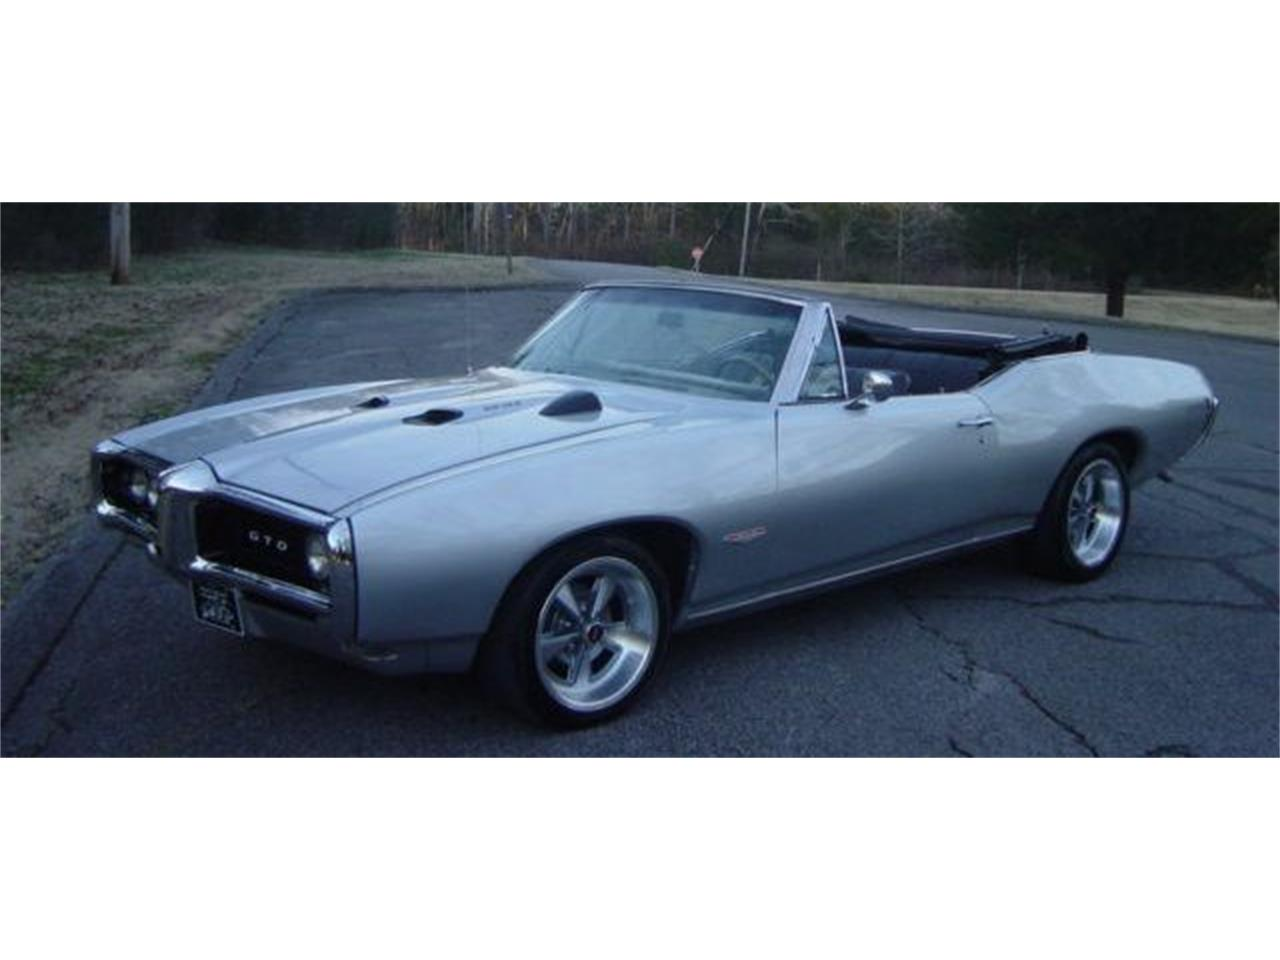 Large Picture of Classic '68 Tempest located in Tennessee - $23,900.00 Offered by Maple Motors - MNEK